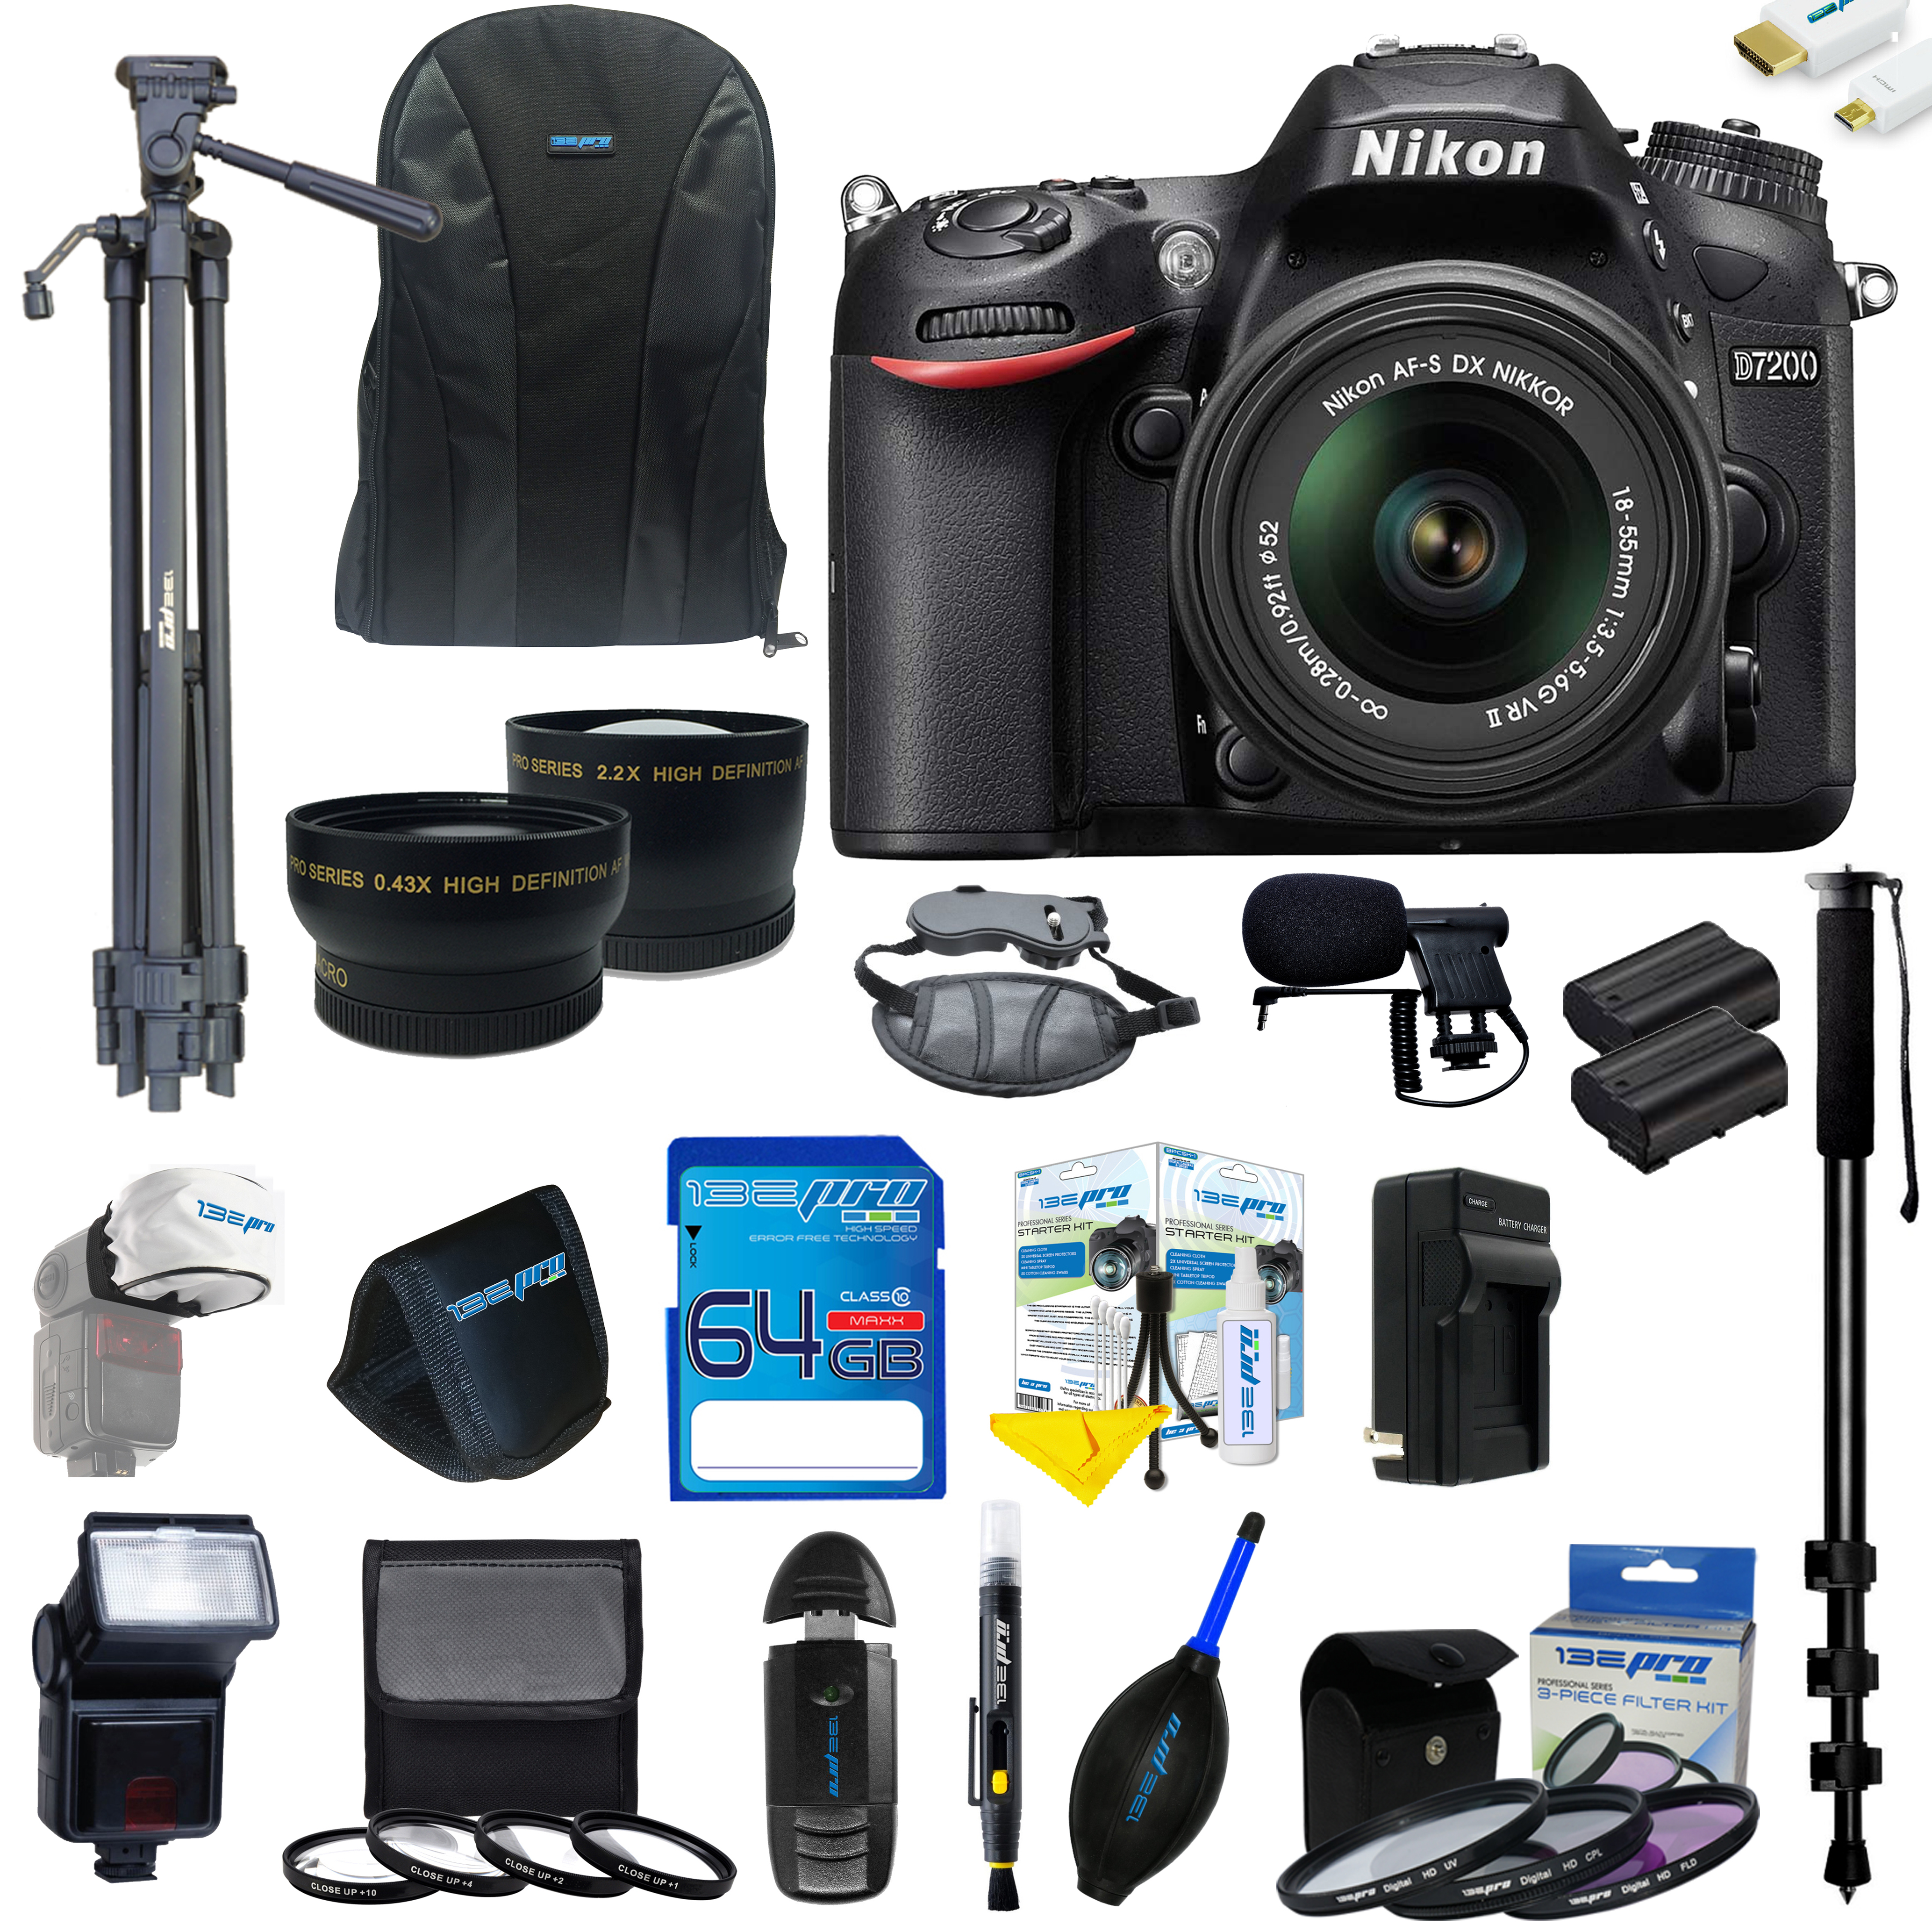 Nikon D7200 DSLR Camera with 18-55mm Lens + Pixi Ultimate Kit